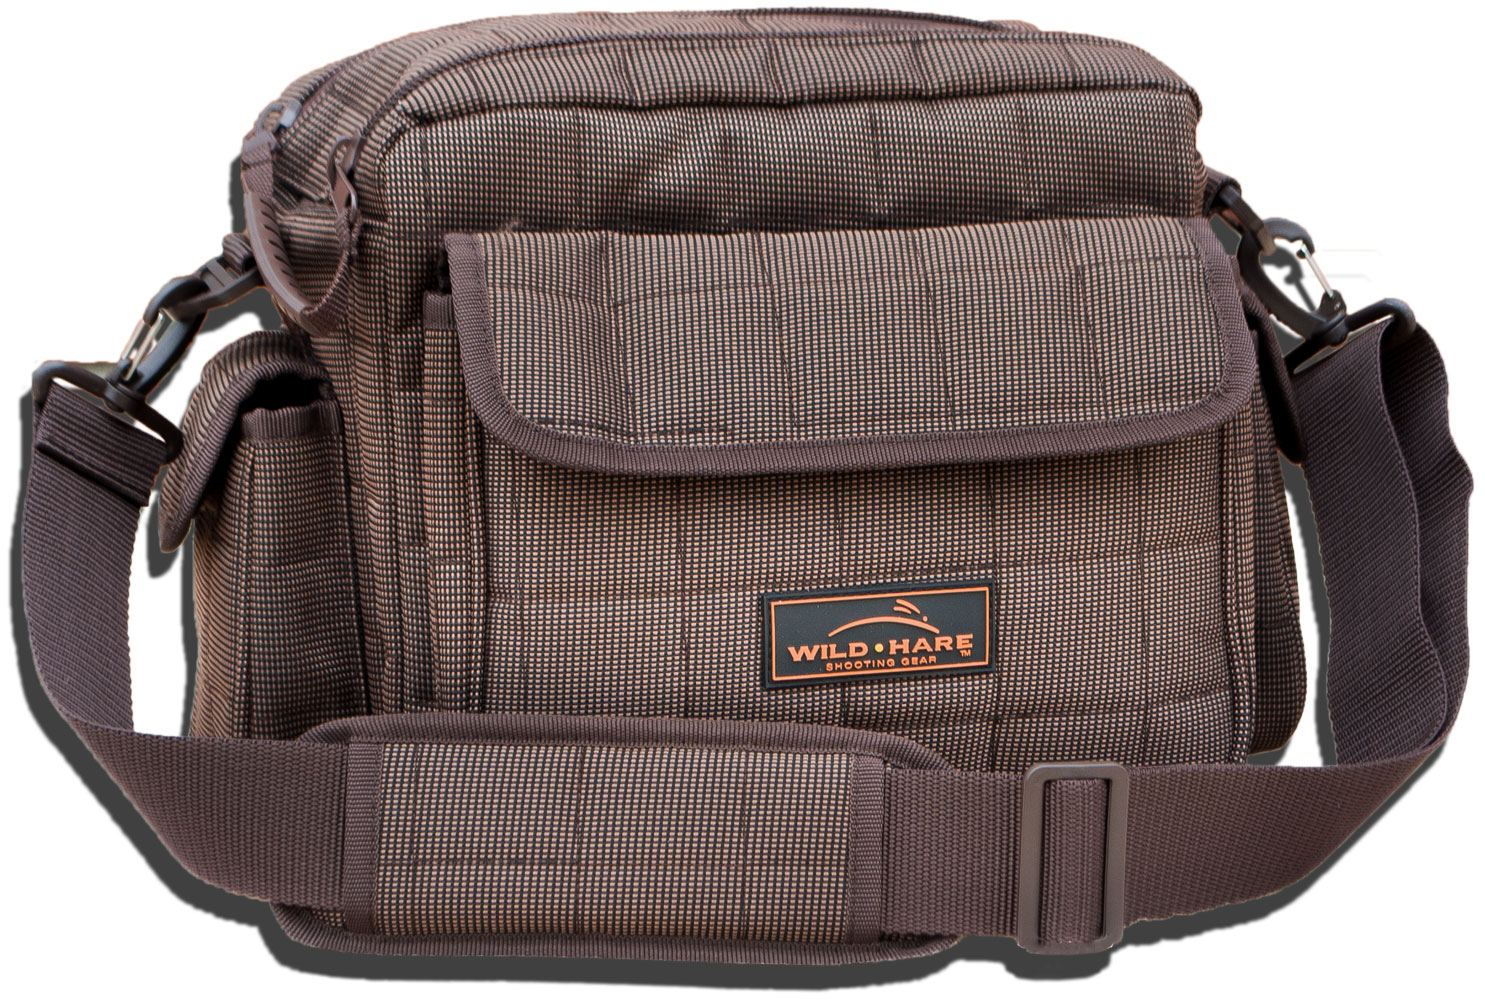 NEW! Wild Hare Premium Sporting Clays Bag - WH-202P Wild Hare Shooting Bag, Wild Hare sporting clays, Wild Hare Sporting Clays Bag, best sporting clays bag